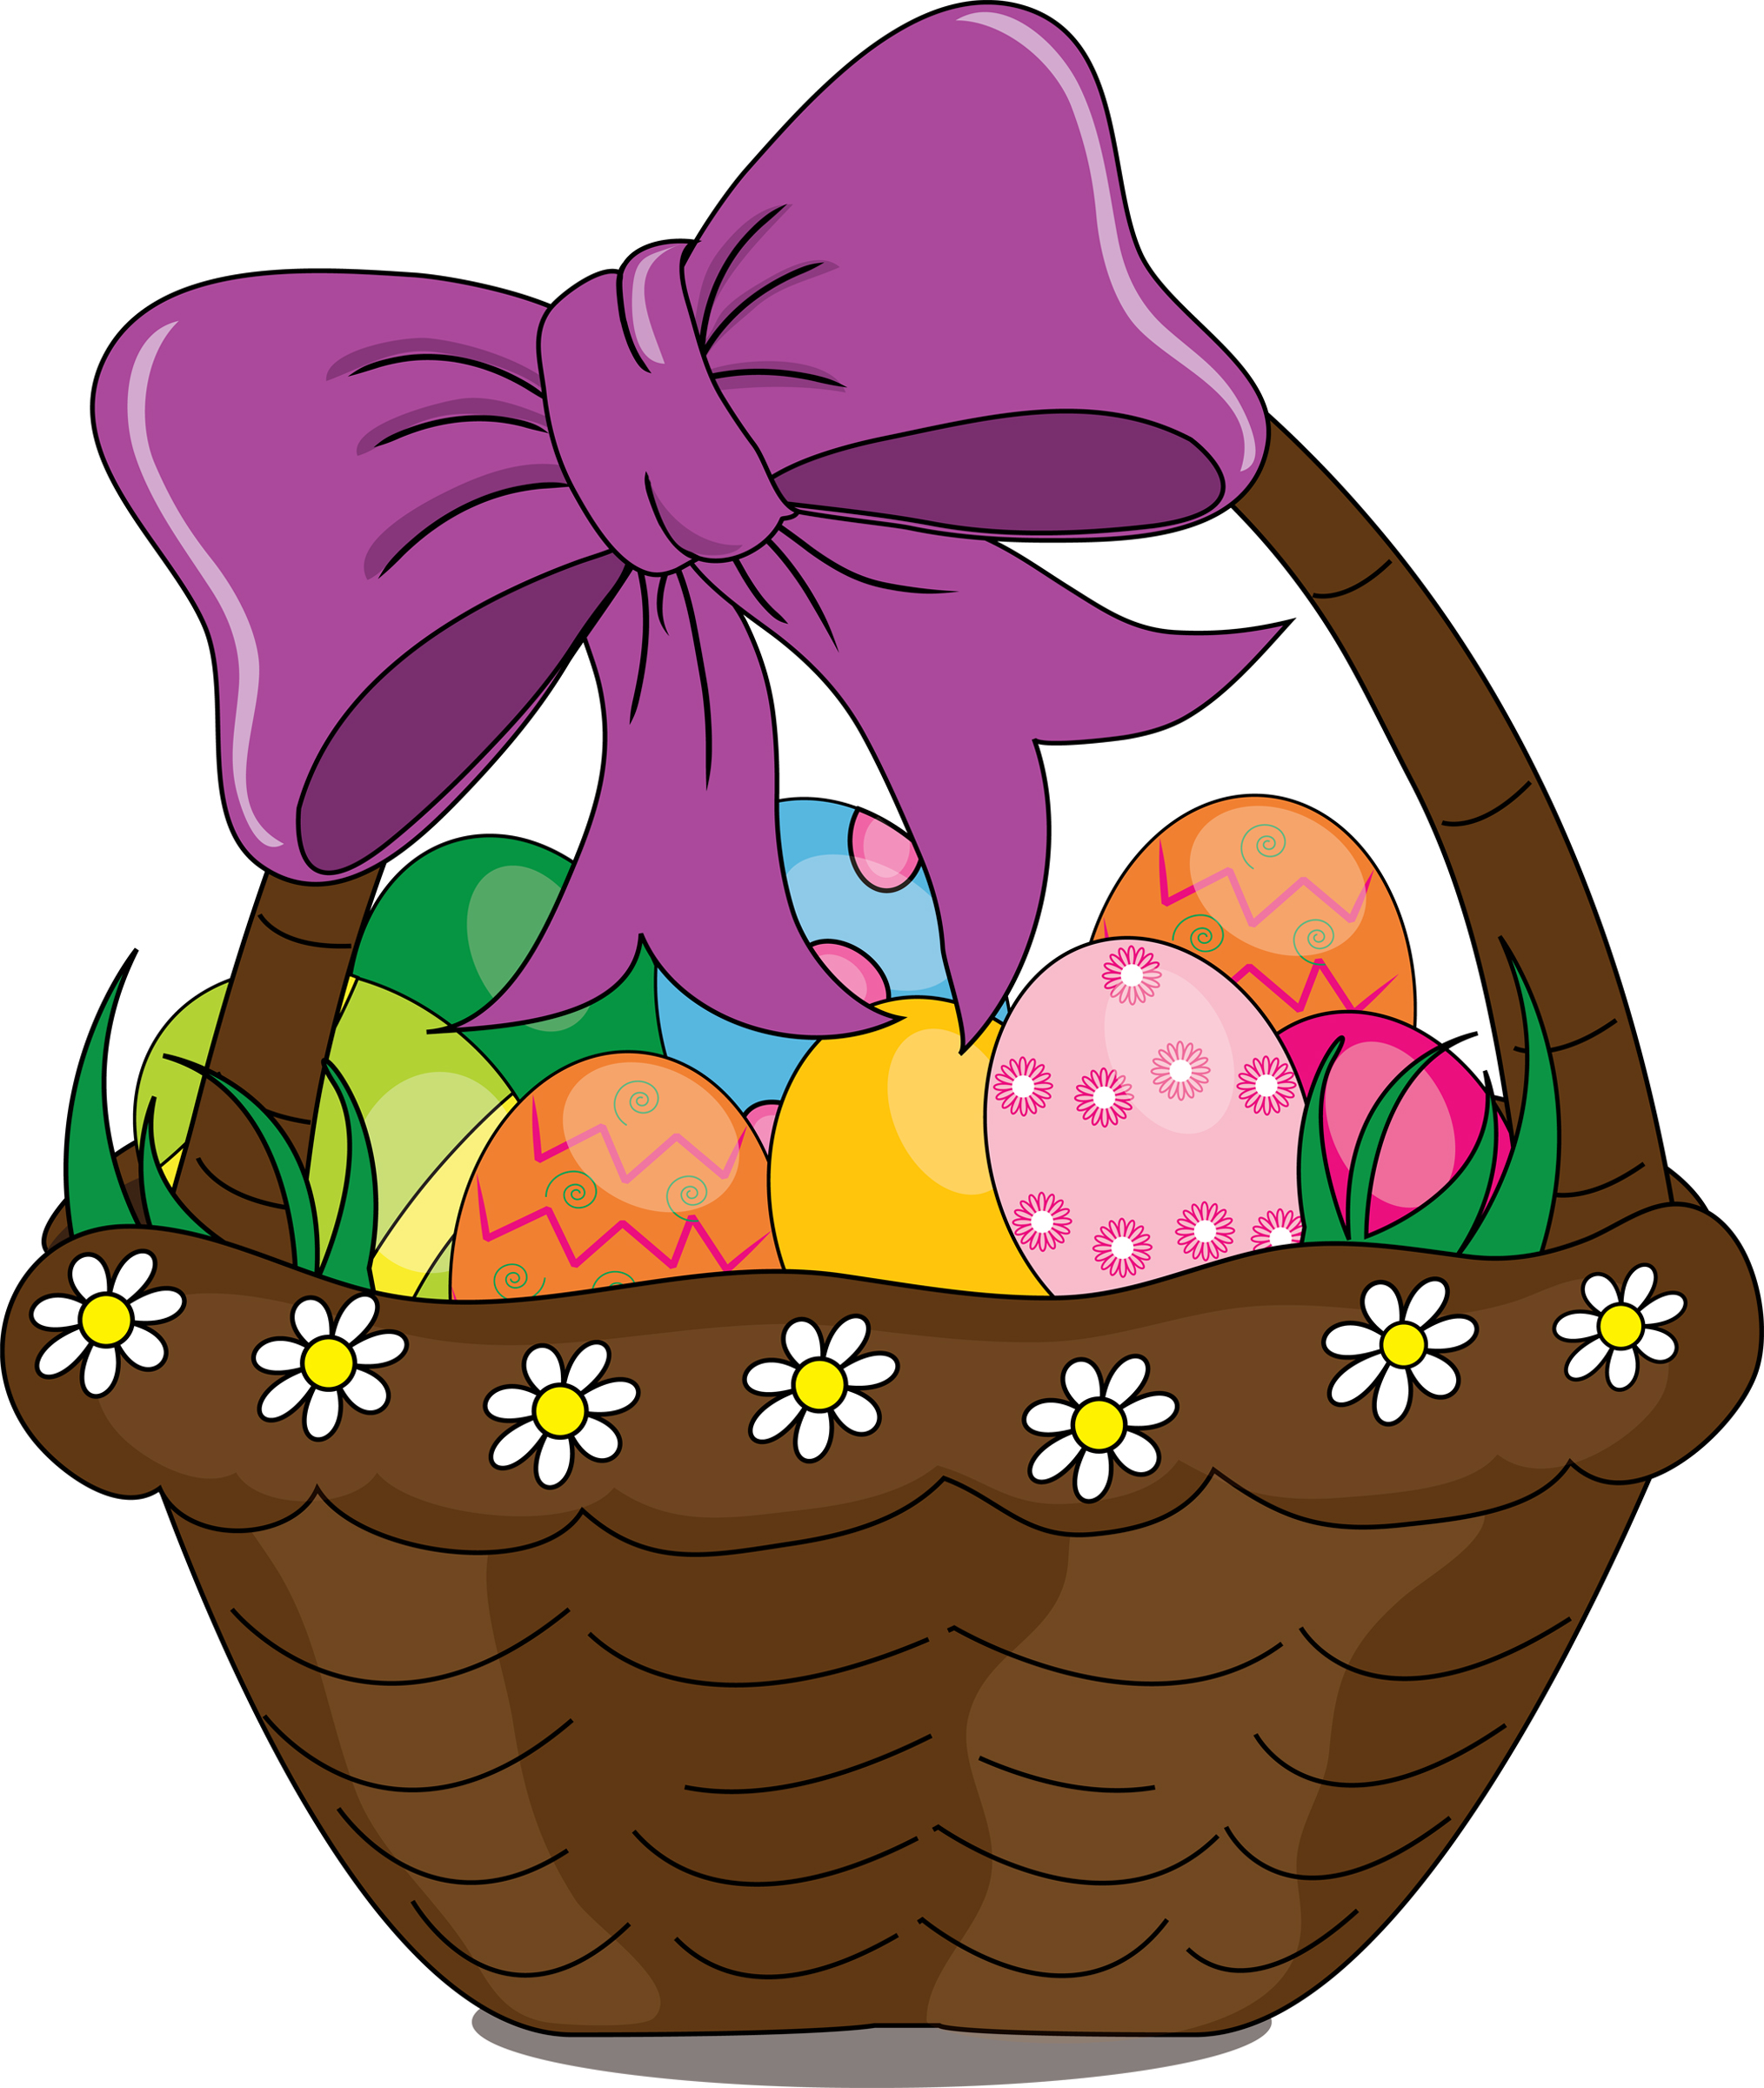 empty easter basket clipart at getdrawings com free for personal rh getdrawings com gift basket raffle clipart gift basket clipart images